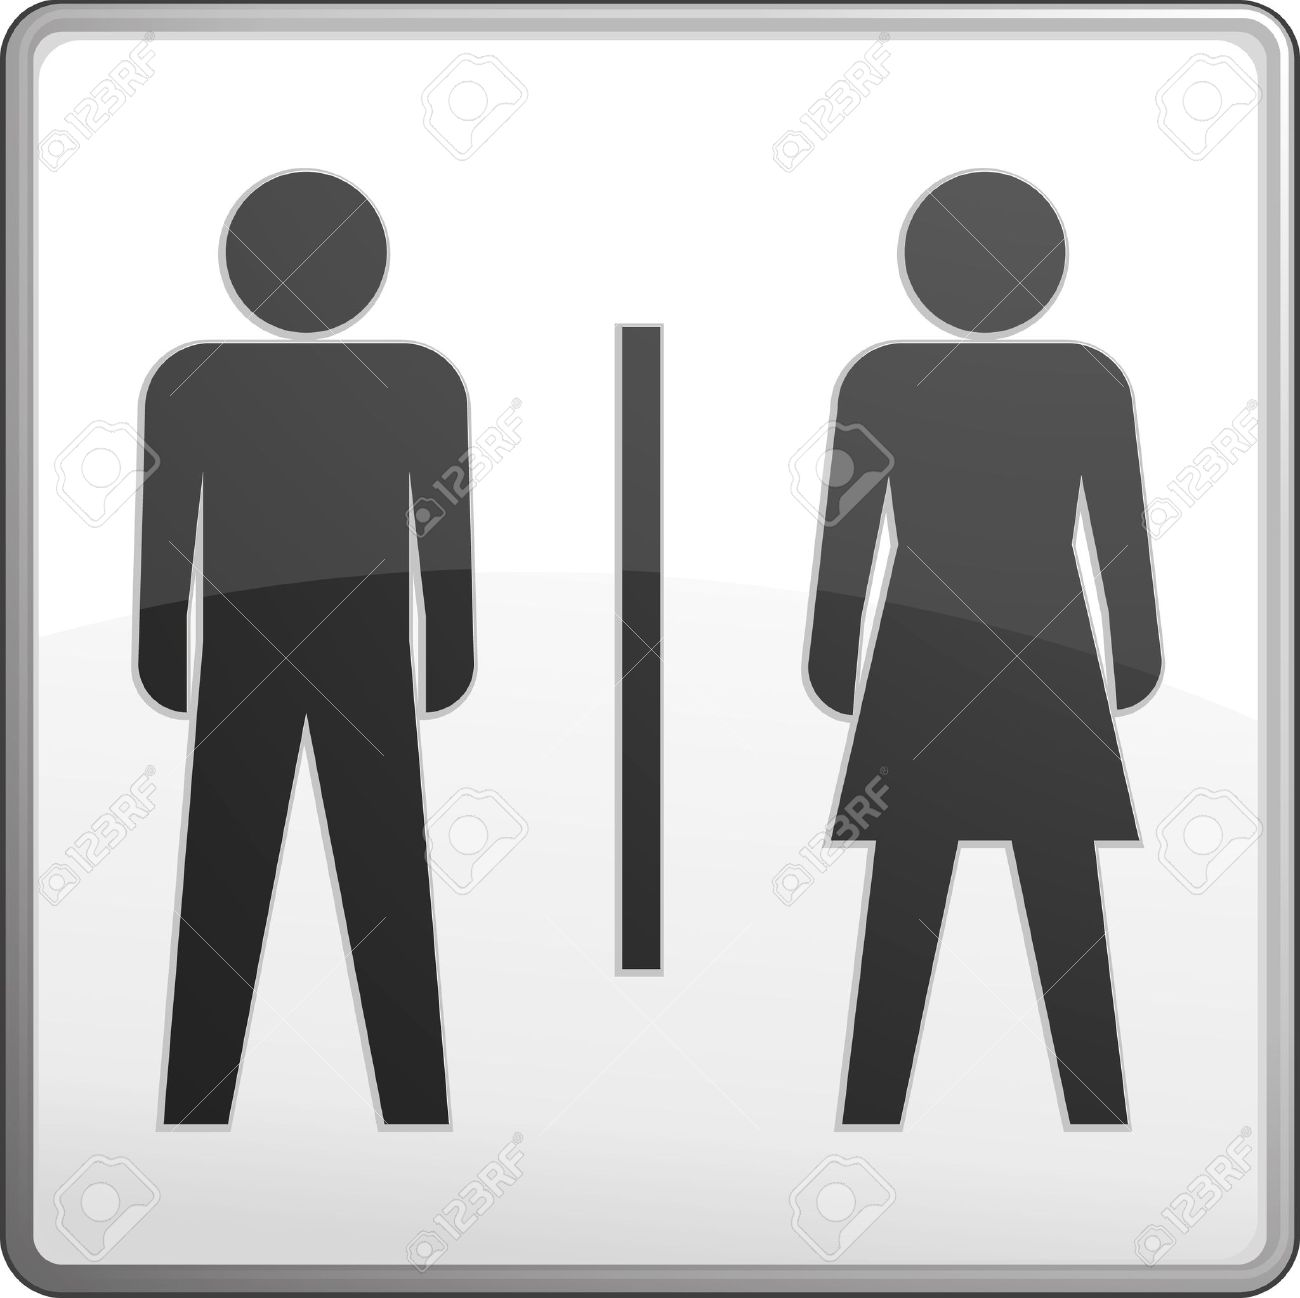 Bathroom Signs Vector male and female bathroom symbols | getpaidforphotos